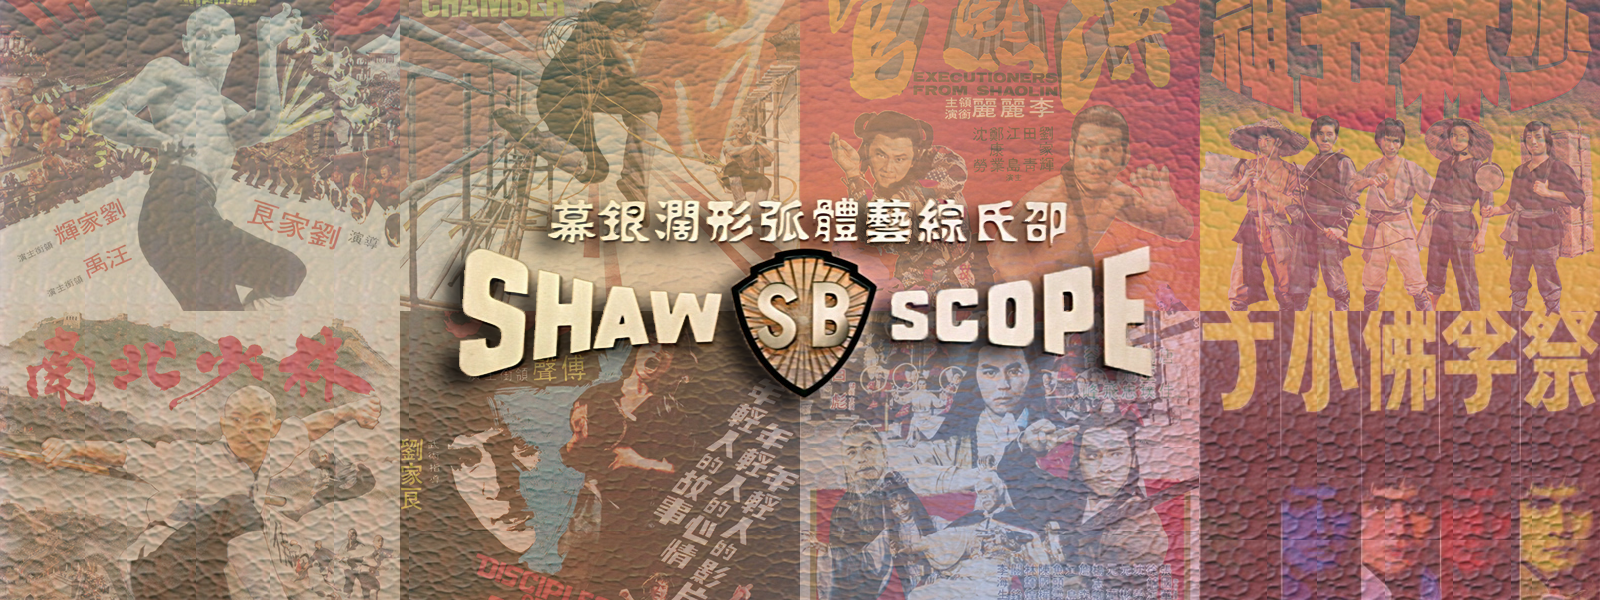 Check Out The Shaw Brothers Classic Collection